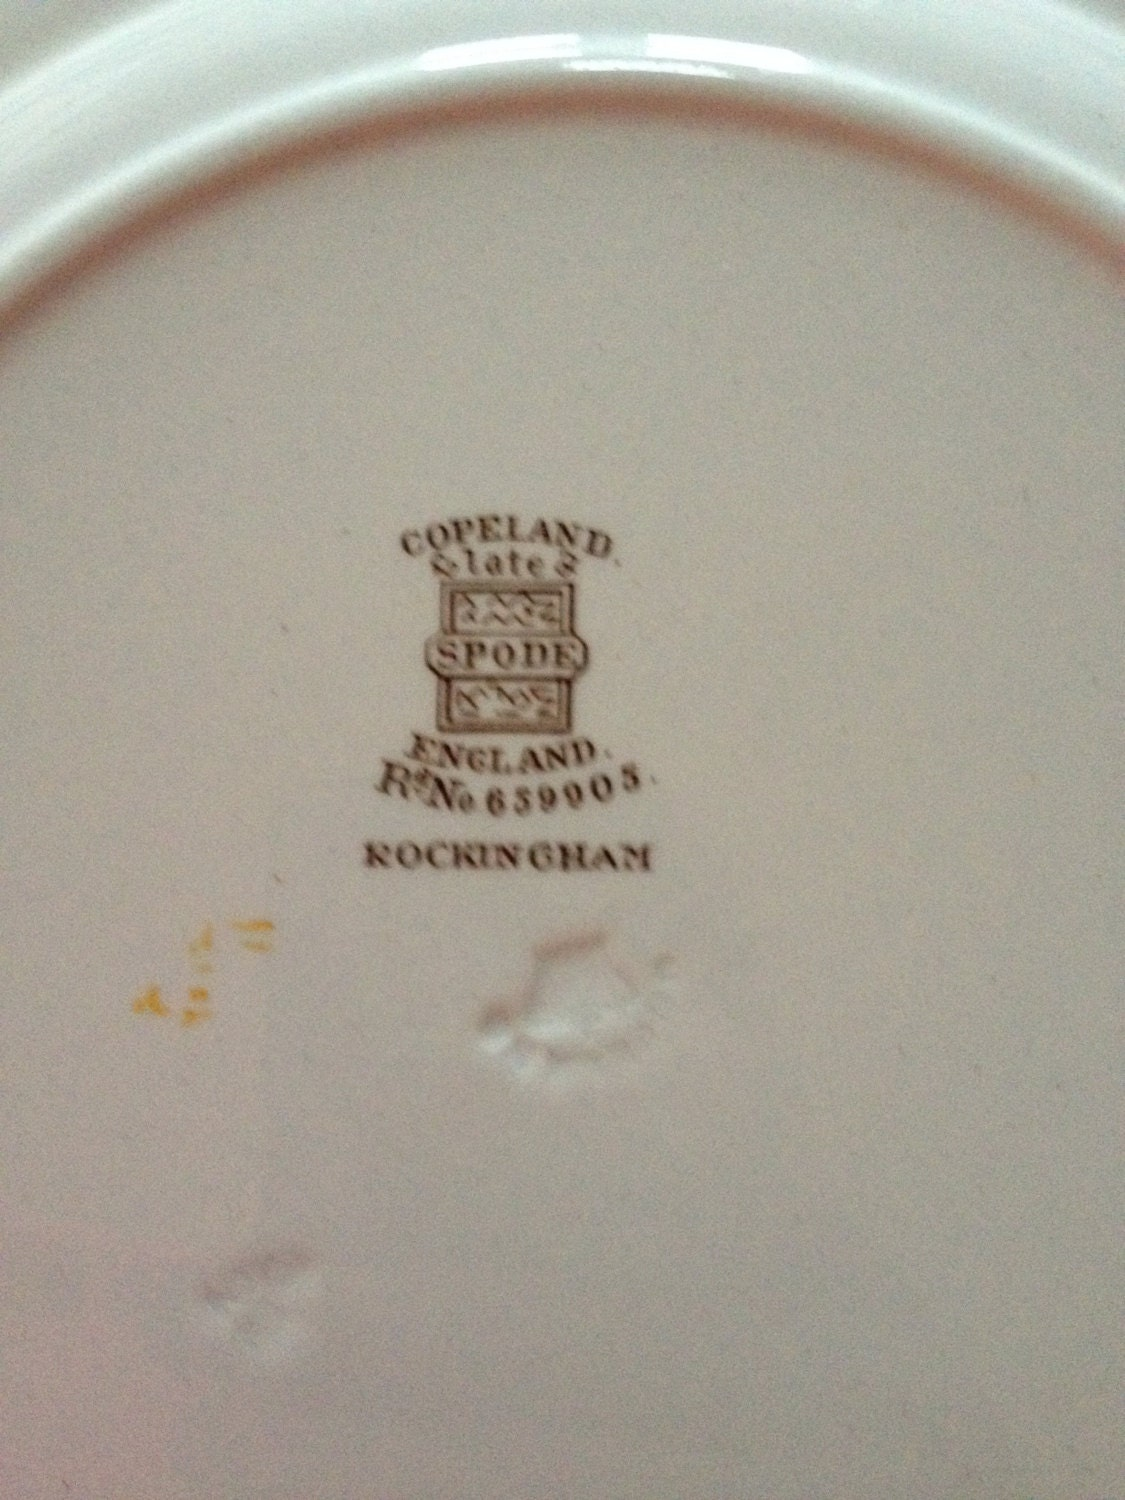 Copeland Spode Rockingham Dinner Plate 9 IN/ 22cm659905 Exclusive to Harrods - In : harrods dinner plates - pezcame.com